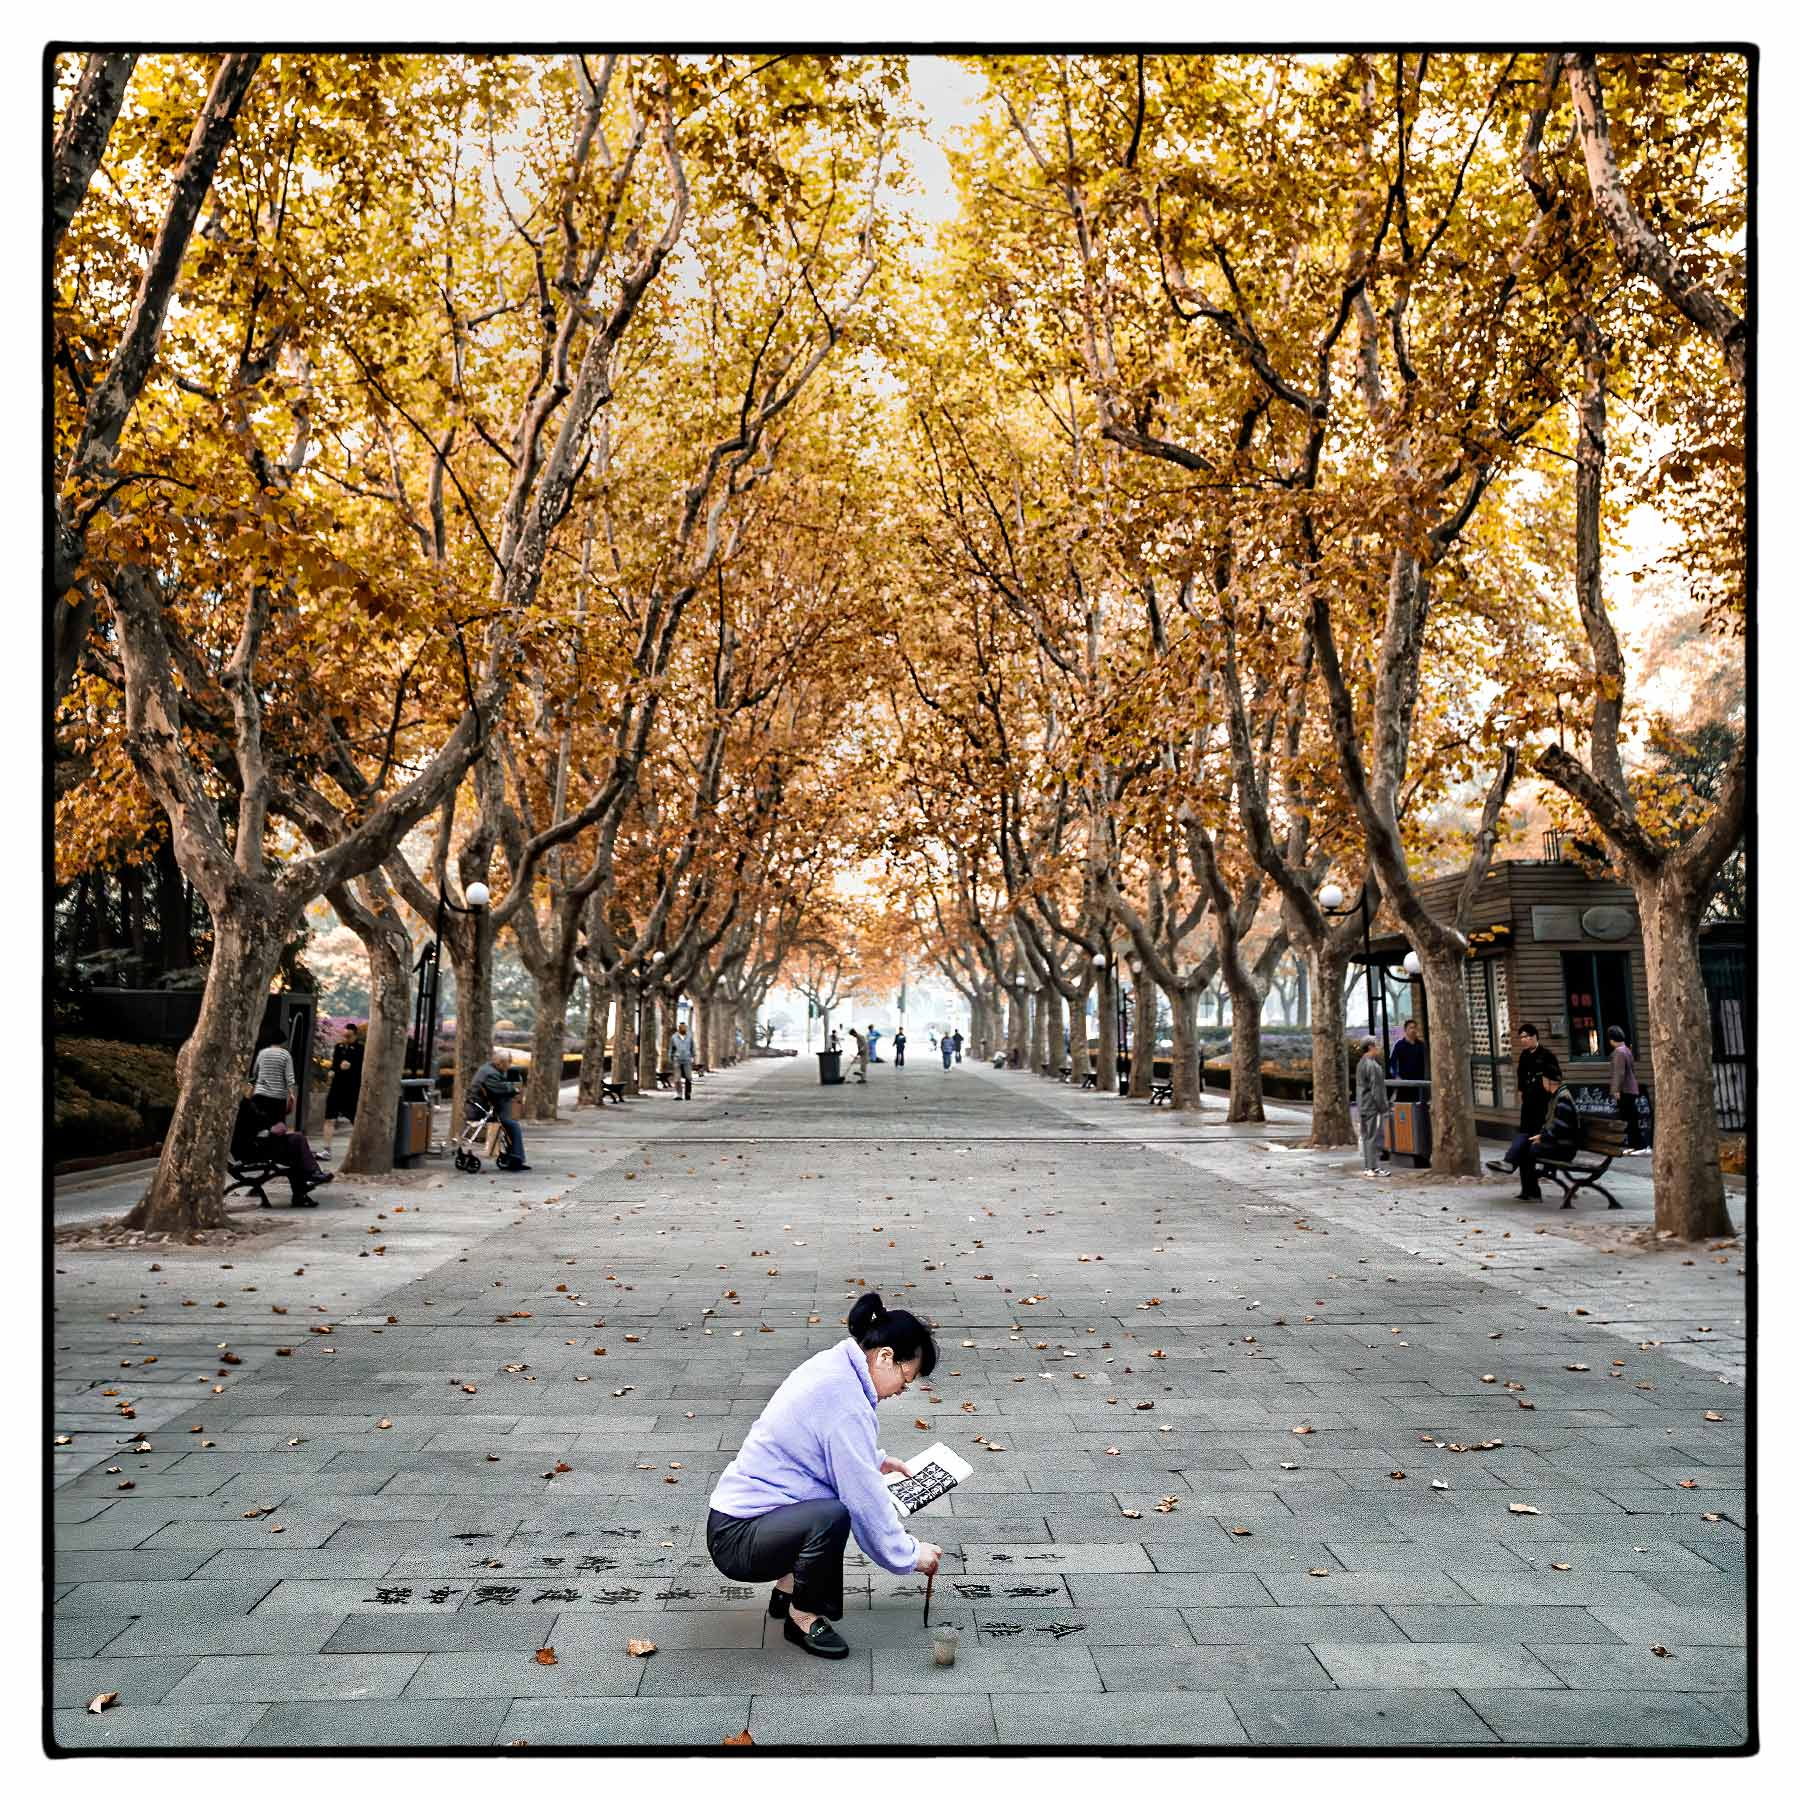 a-chinese-woman-practices-dishu-on-a-park-walkway-in-shanghai-china